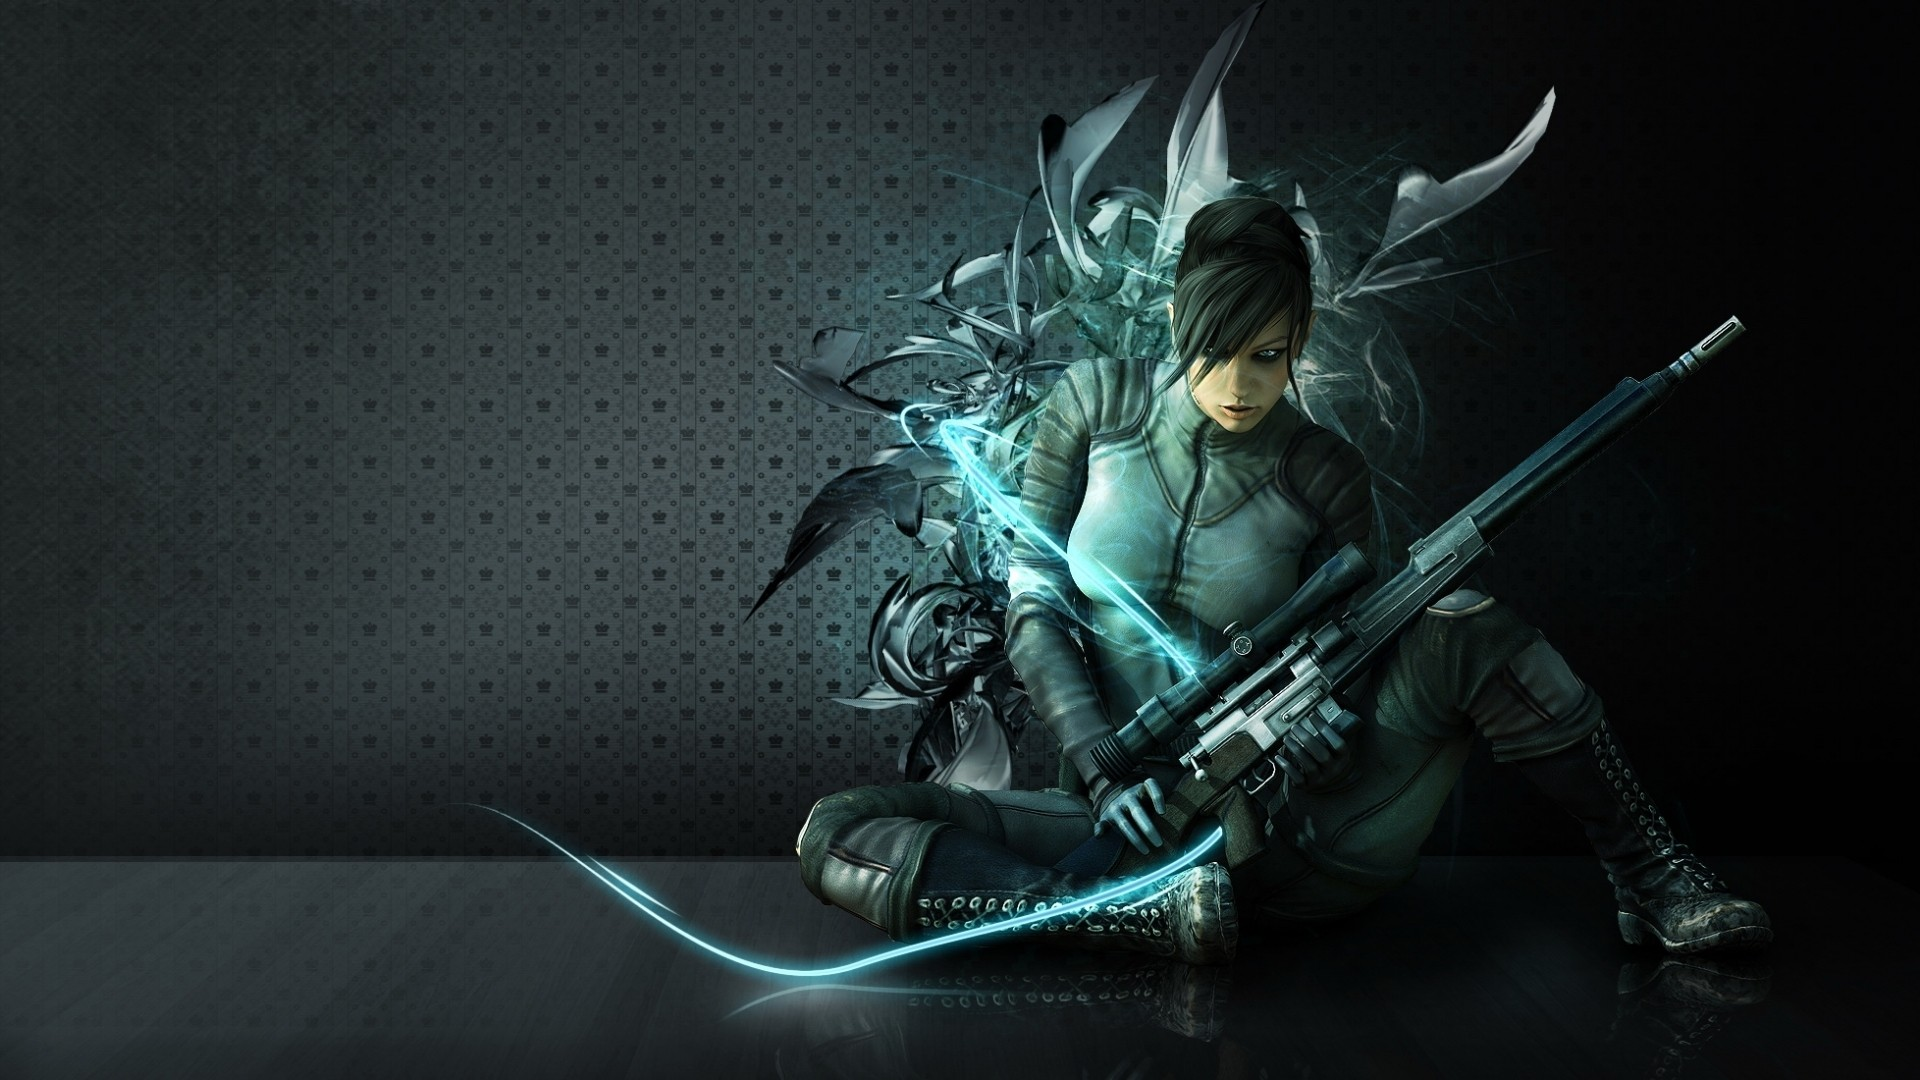 Anime Sniper Images Download Desktop Wallpaper Images 1920x1080